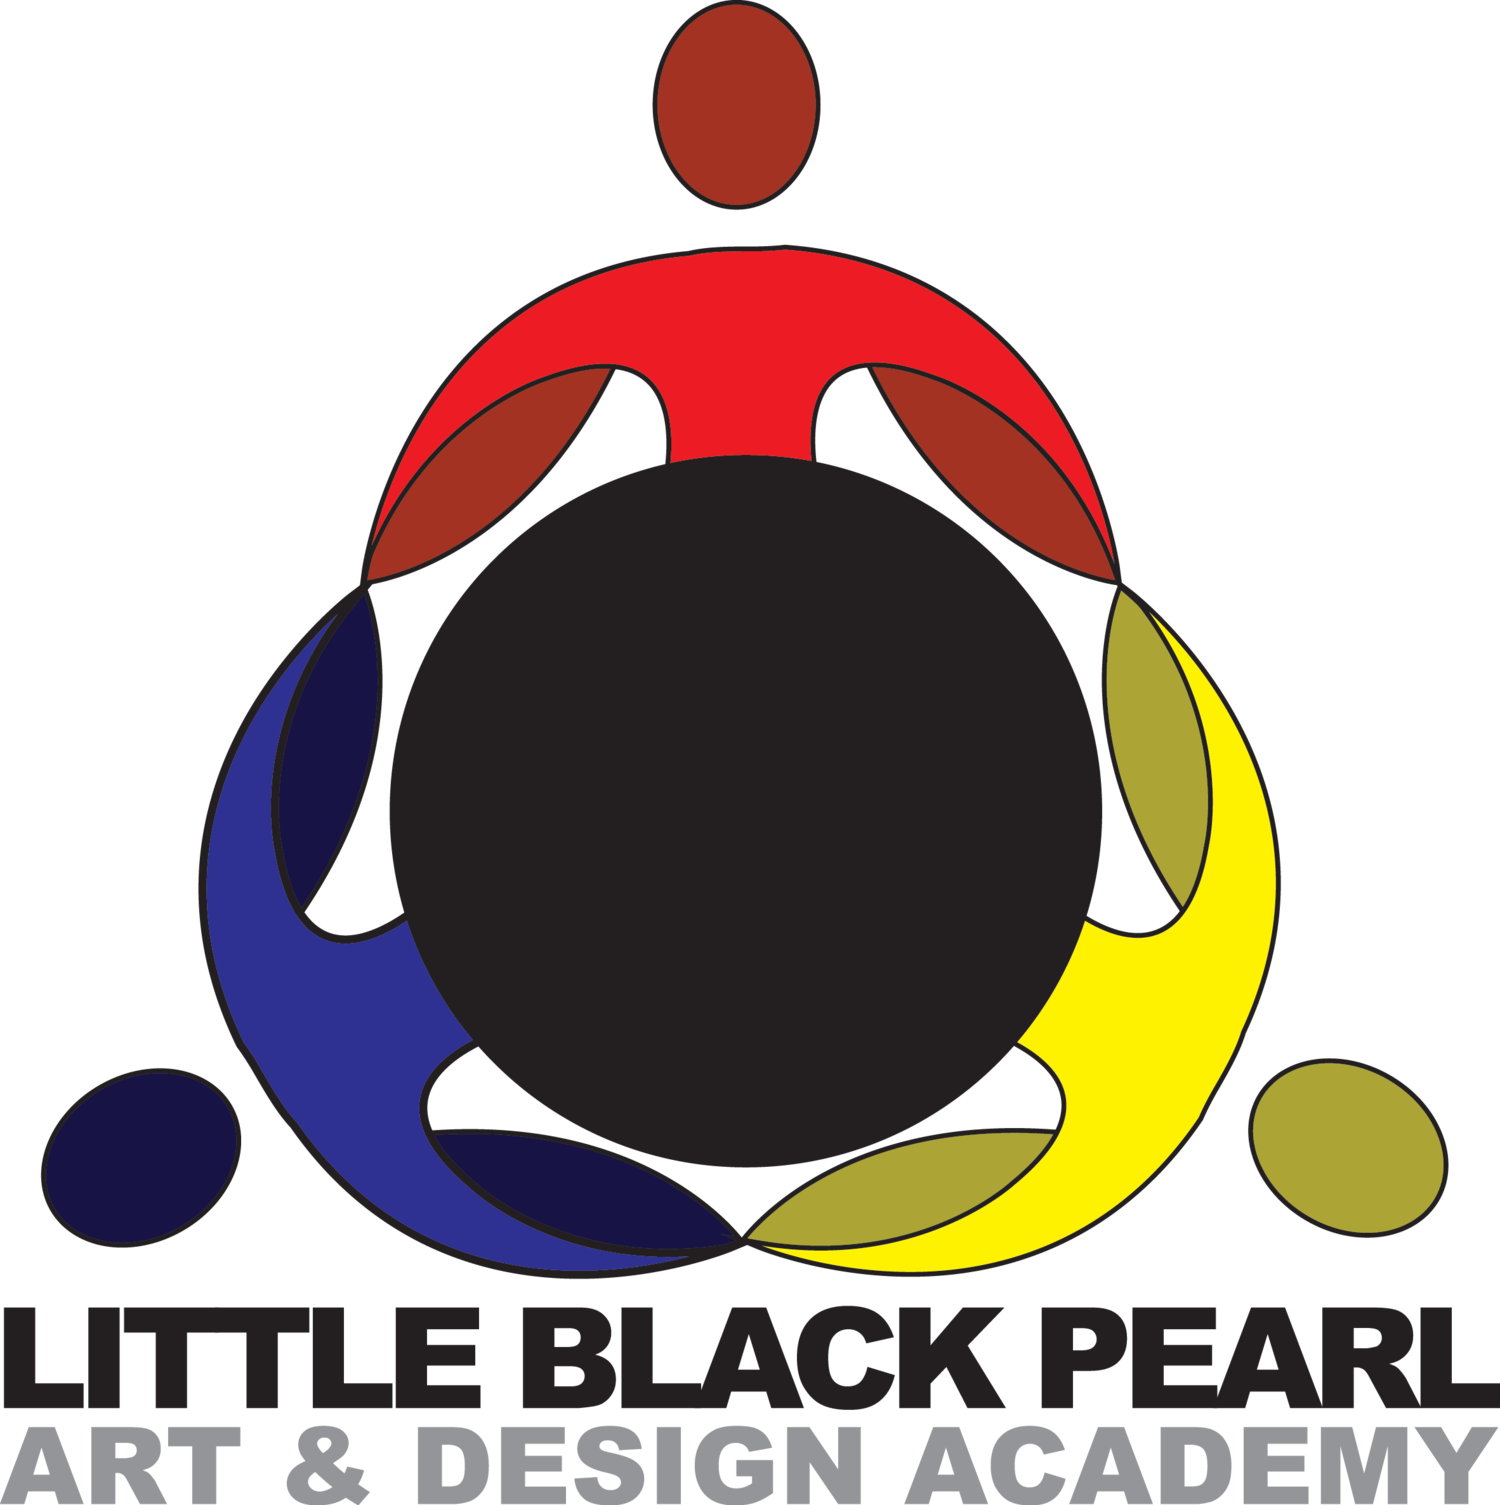 Little Black Pearl Art & Design Academy